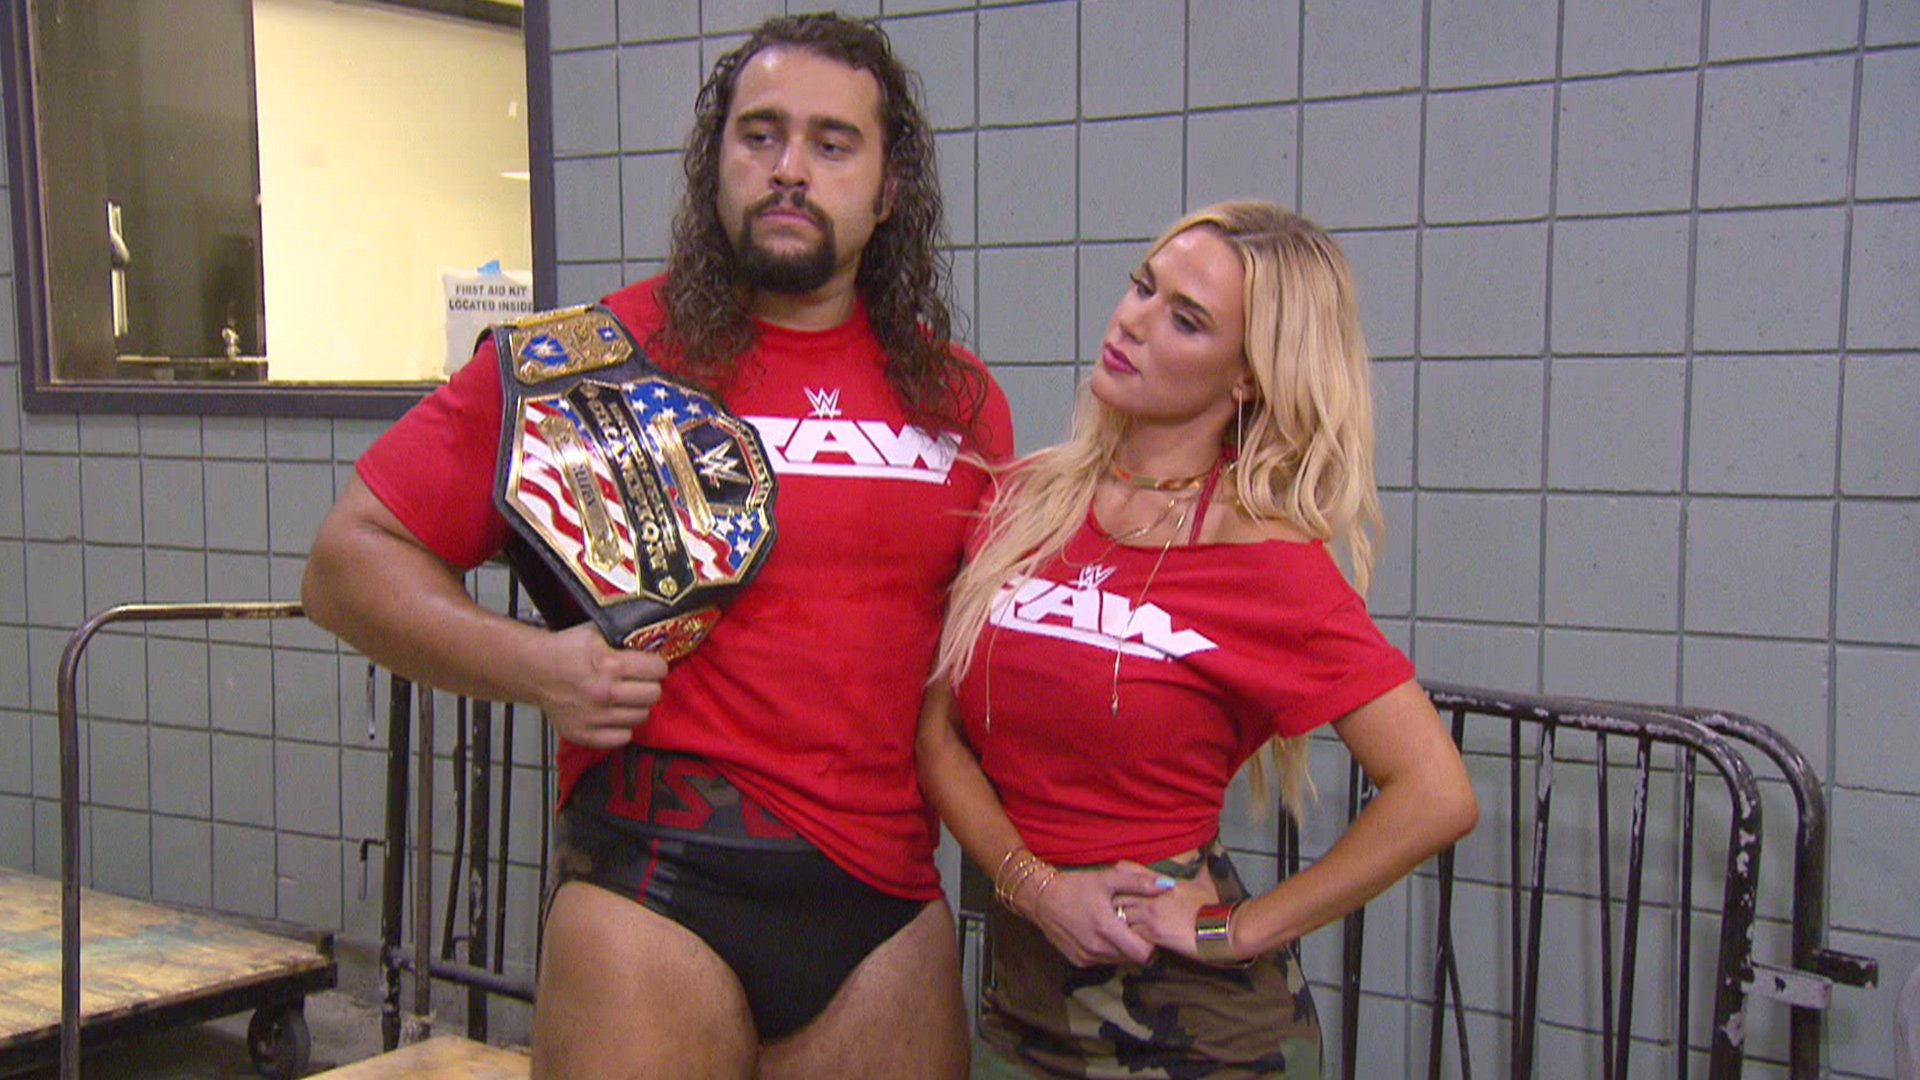 Lana is summoned to Raw, where she'll stay with Rusev but have to make new friends in the locker room.